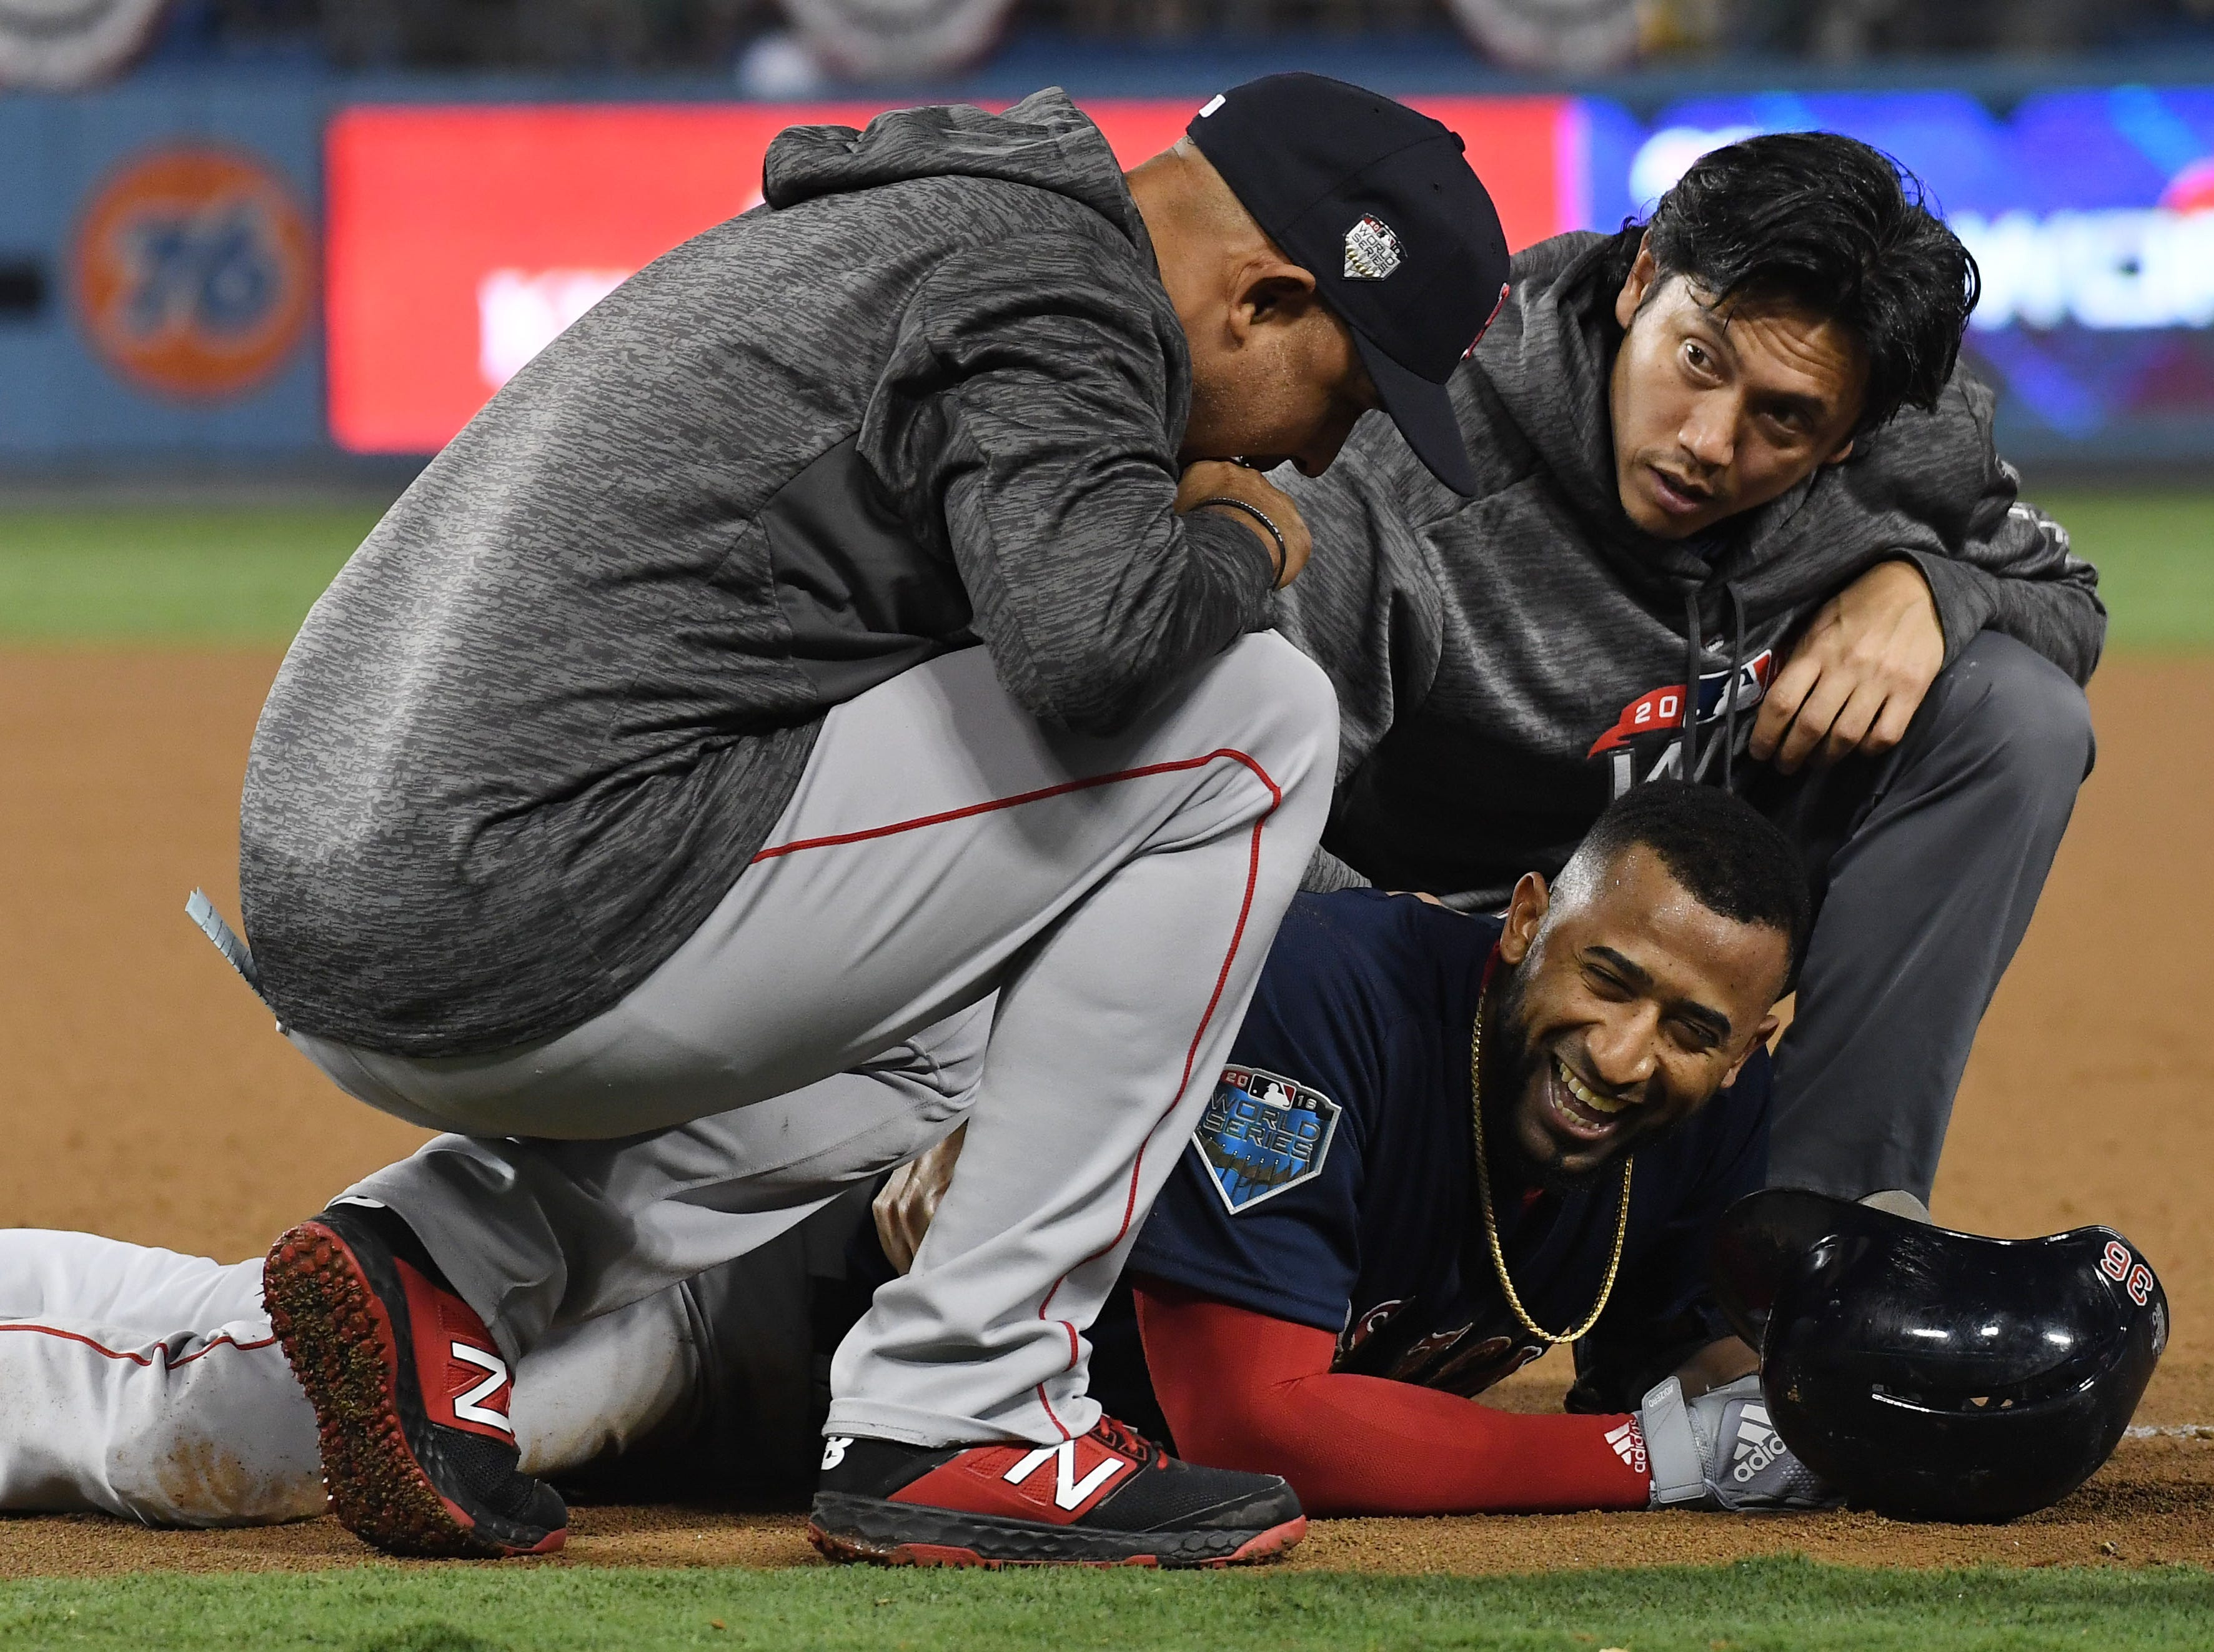 Game 3 at Dodger Stadium: Eduardo Nunez is checked on after sliding safely into first in the 13th inning. The go-ahead run scored on the play.